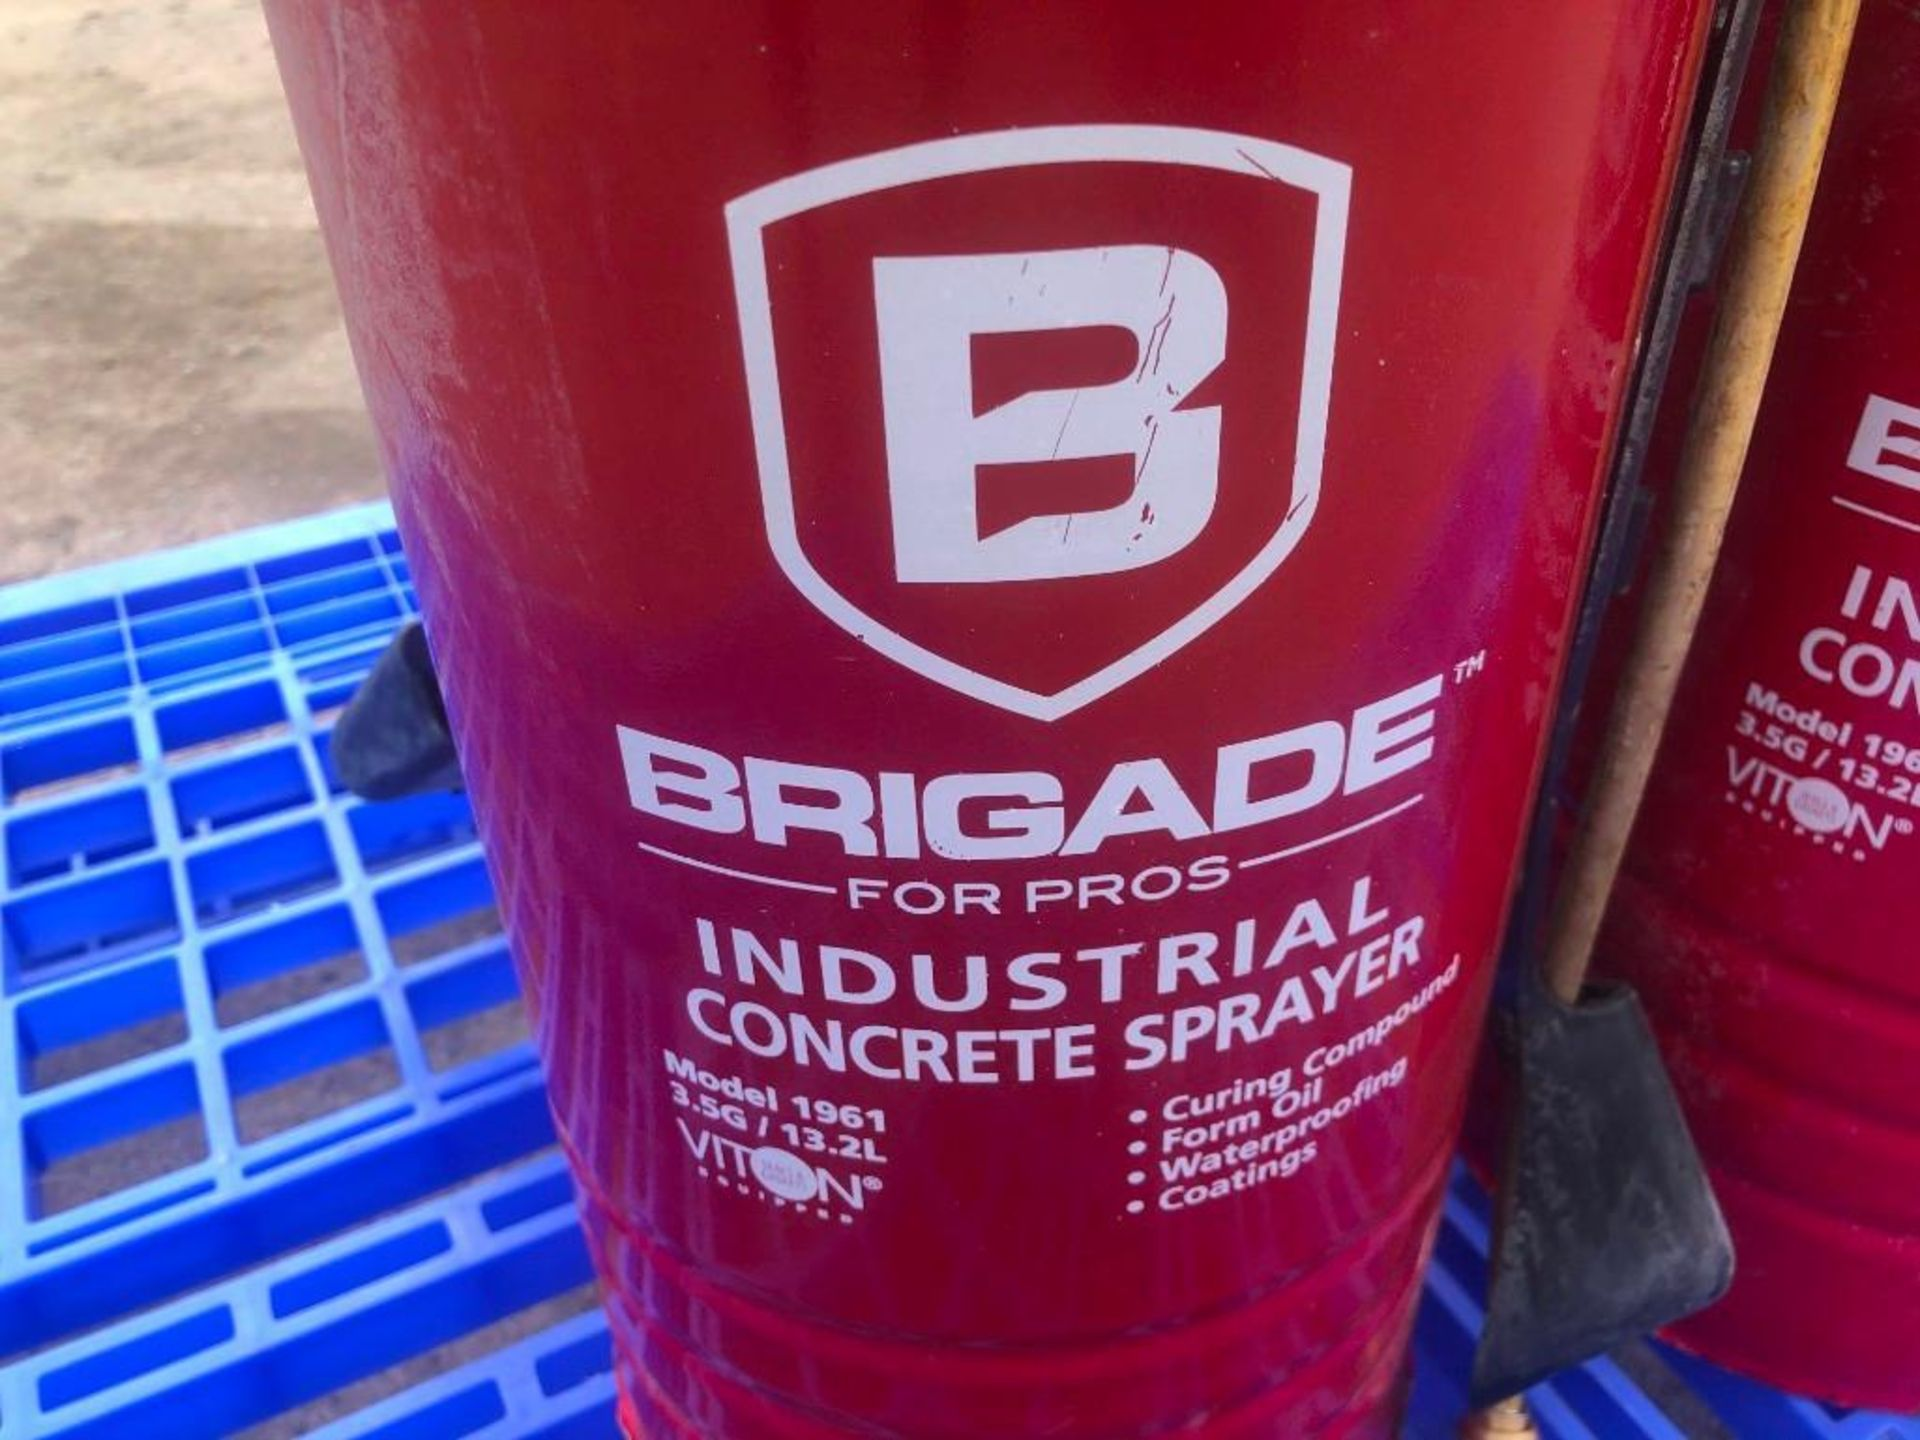 Lot 26 - (4) BRIGADE Industrial Concrete Sprayers. Located at 301 E Henry Street, Mt. Pleasant, IA 52641